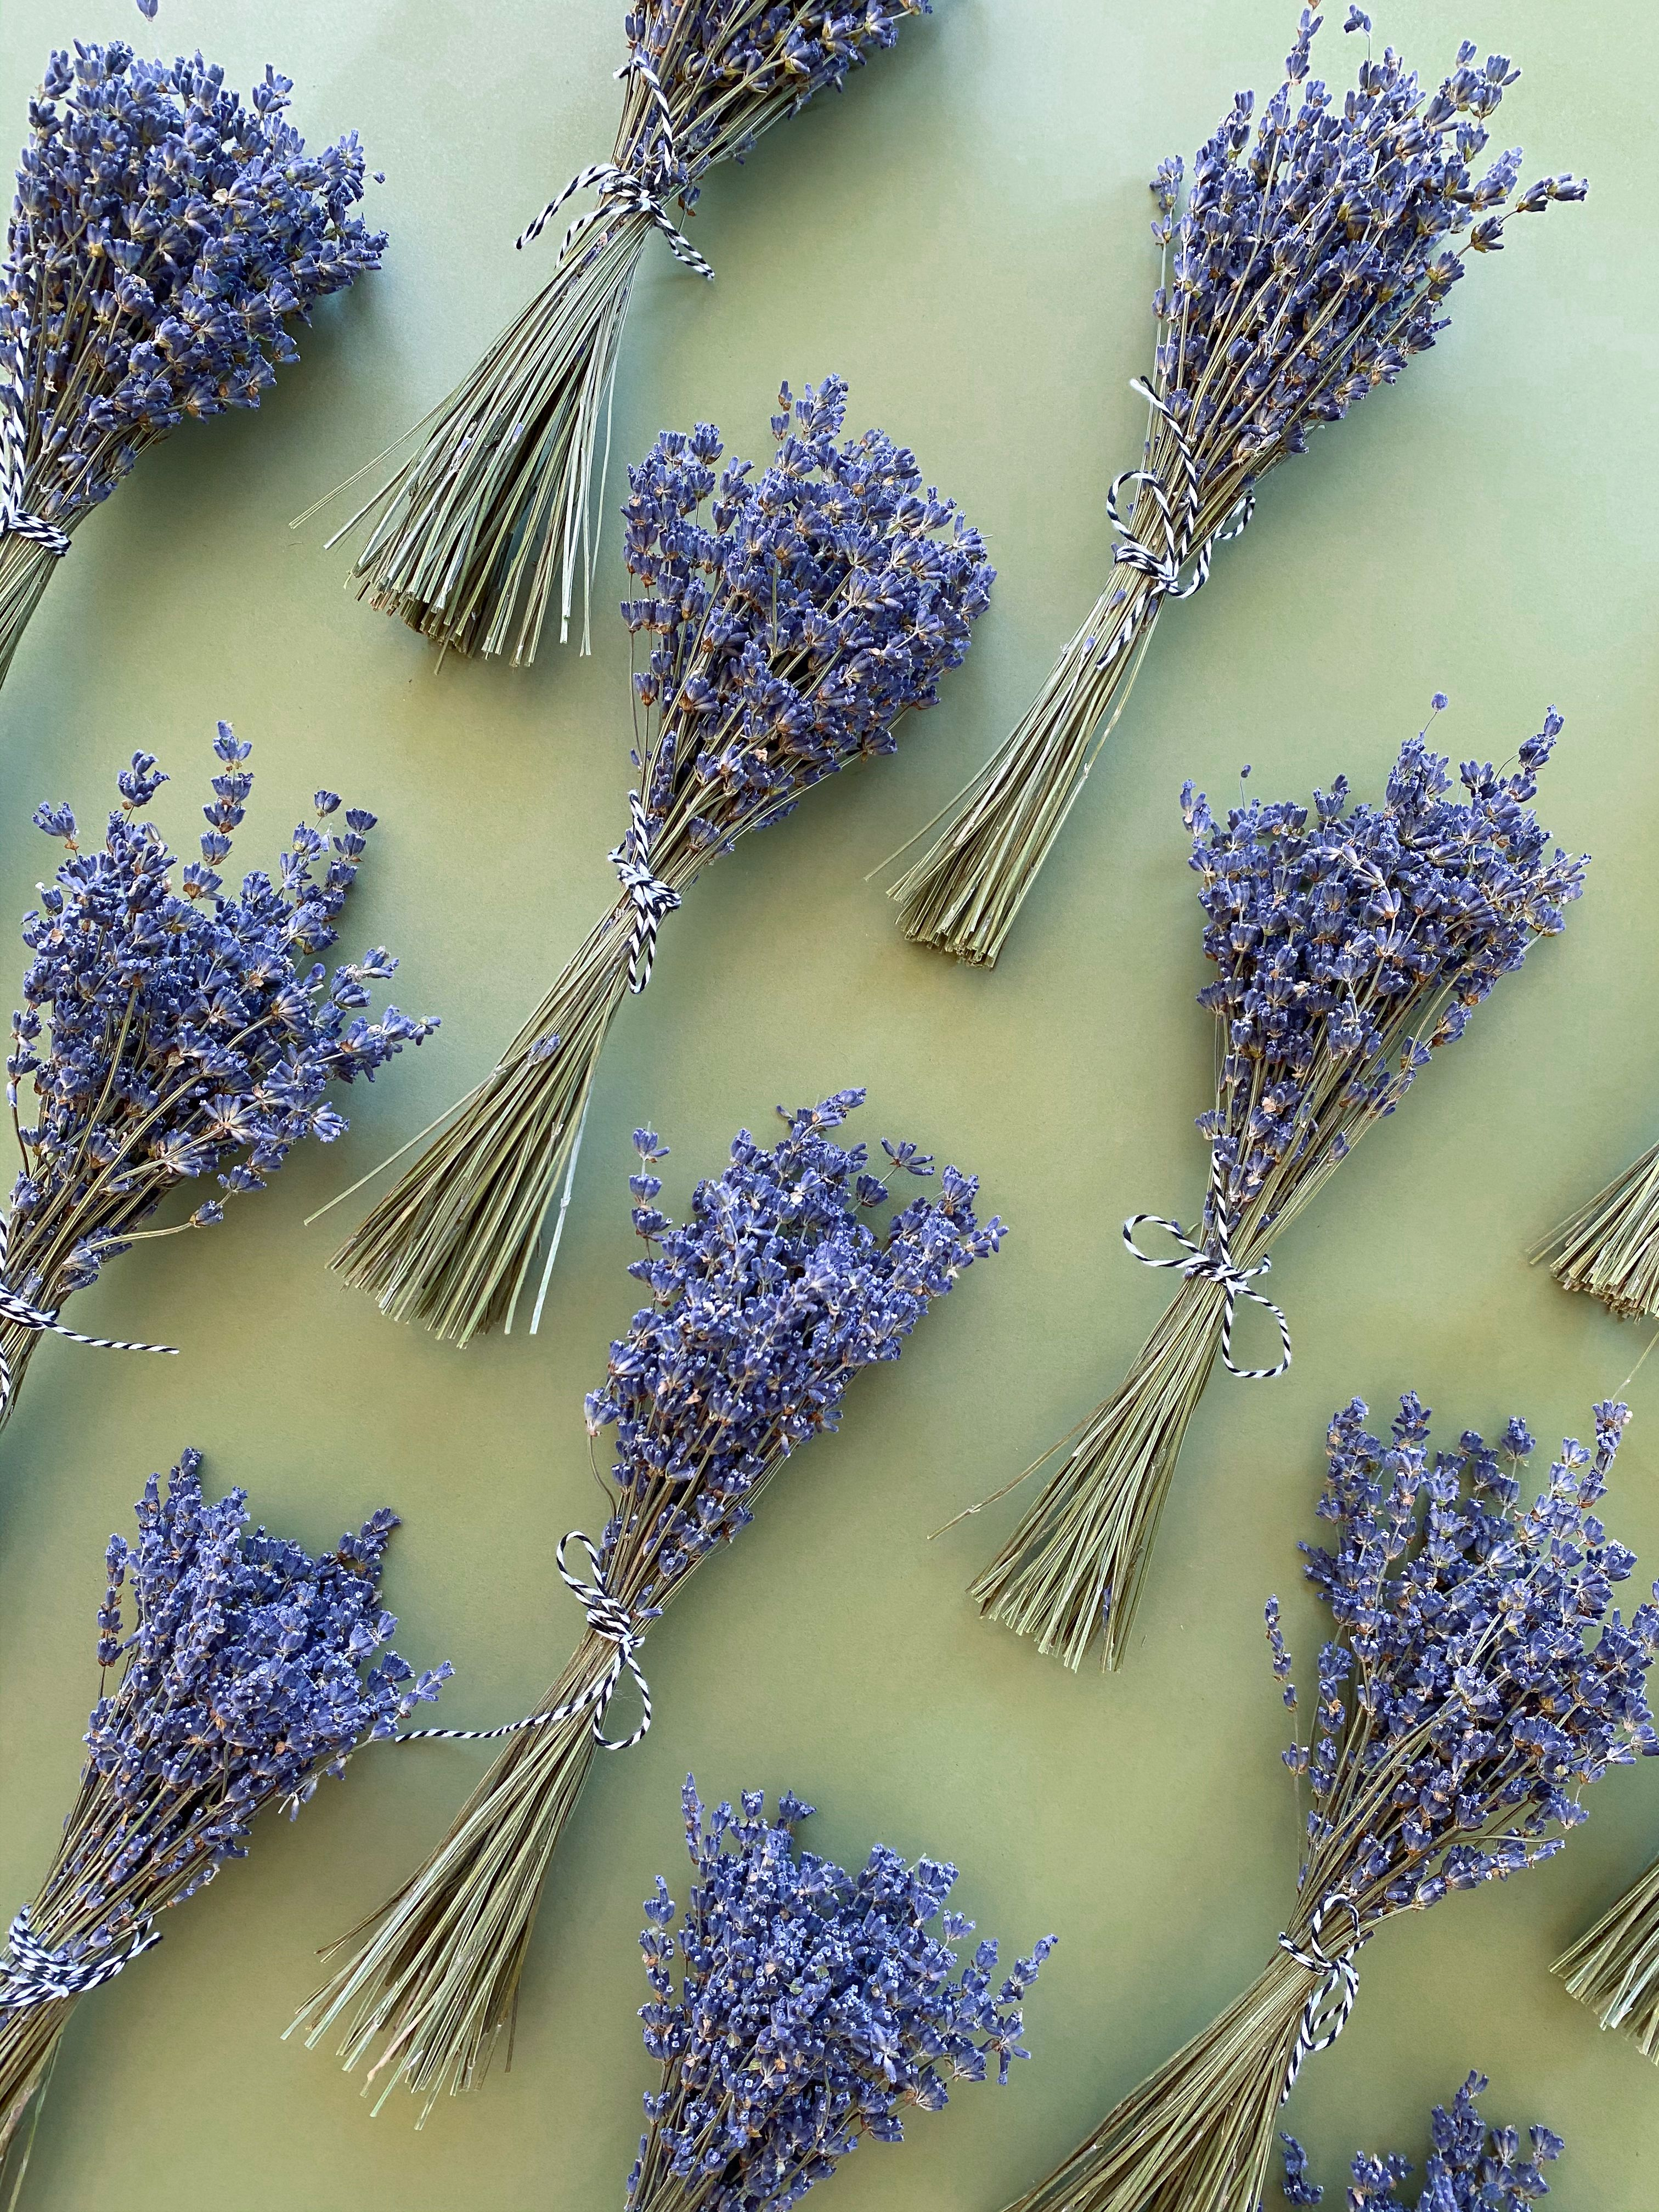 Lovely Lavender Gift Box in 2020 Lavender gifts